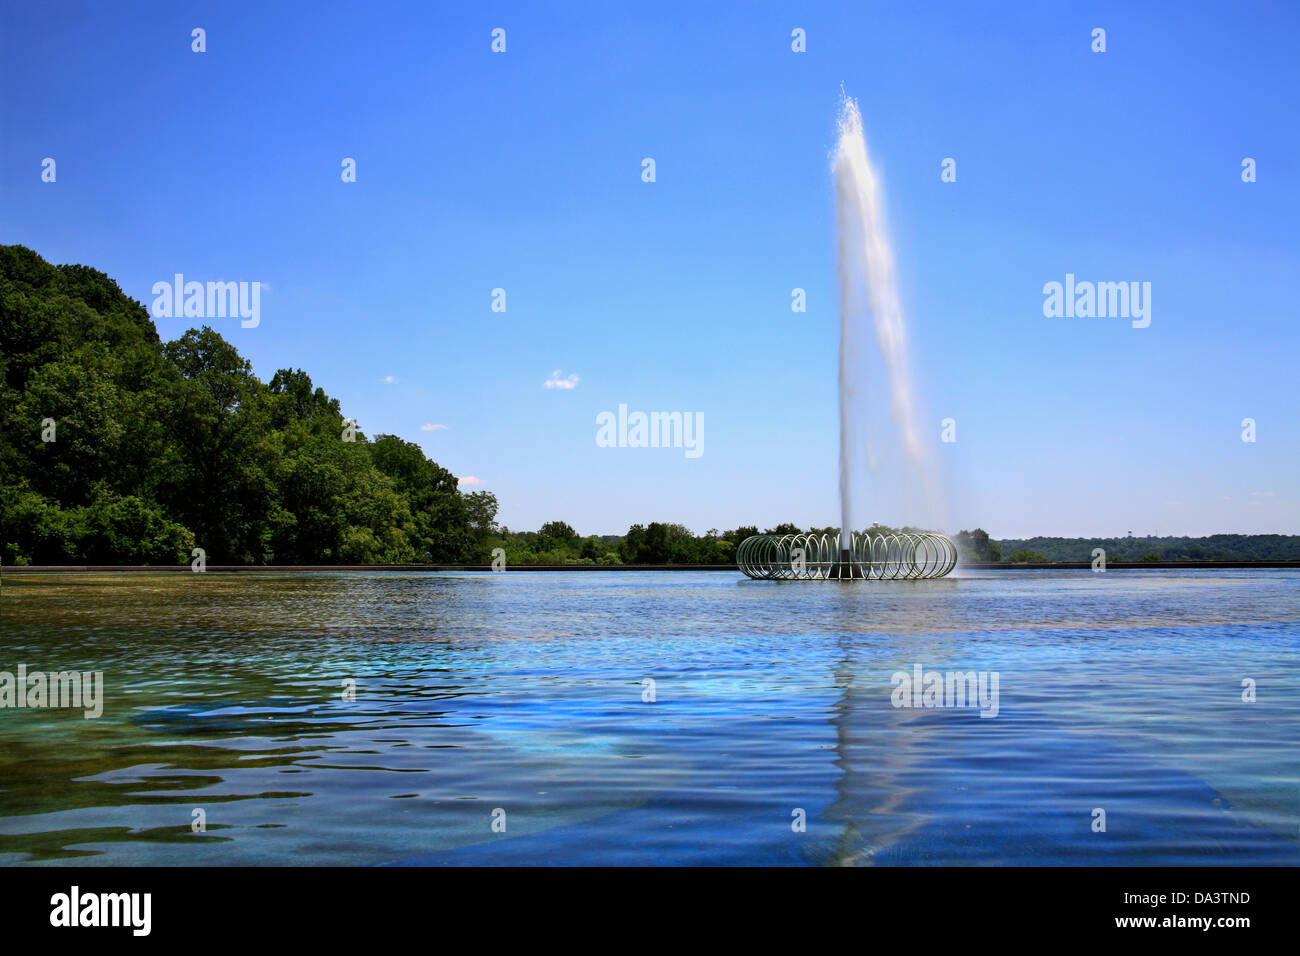 A Water Fountain and Reflecting Pool At Eden Park In Cincinnati Ohio, USA - Stock Image